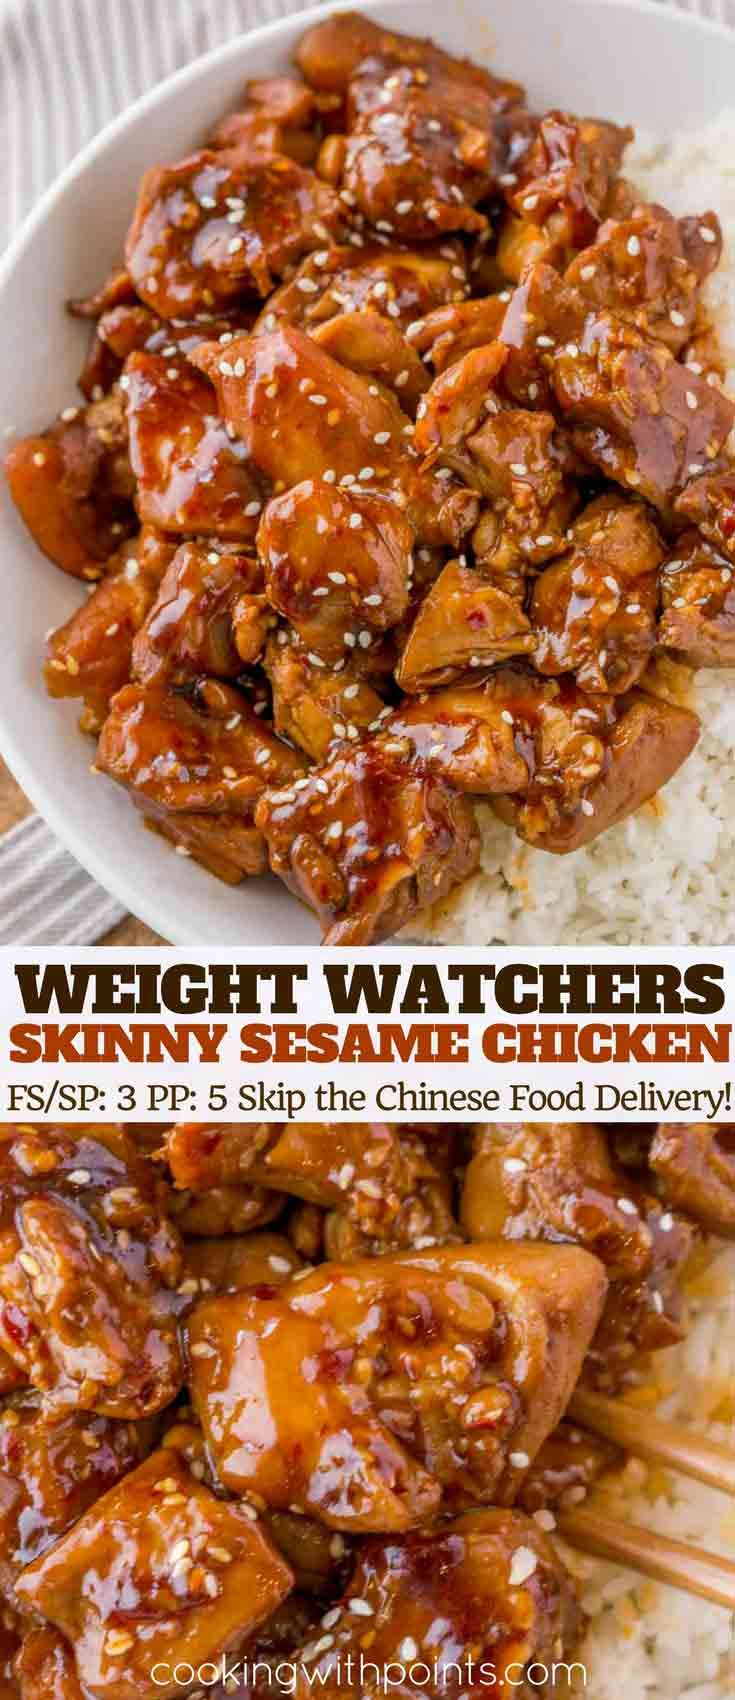 146 best cooking with points all recipes images on pinterest skinny sesame chicken forumfinder Image collections